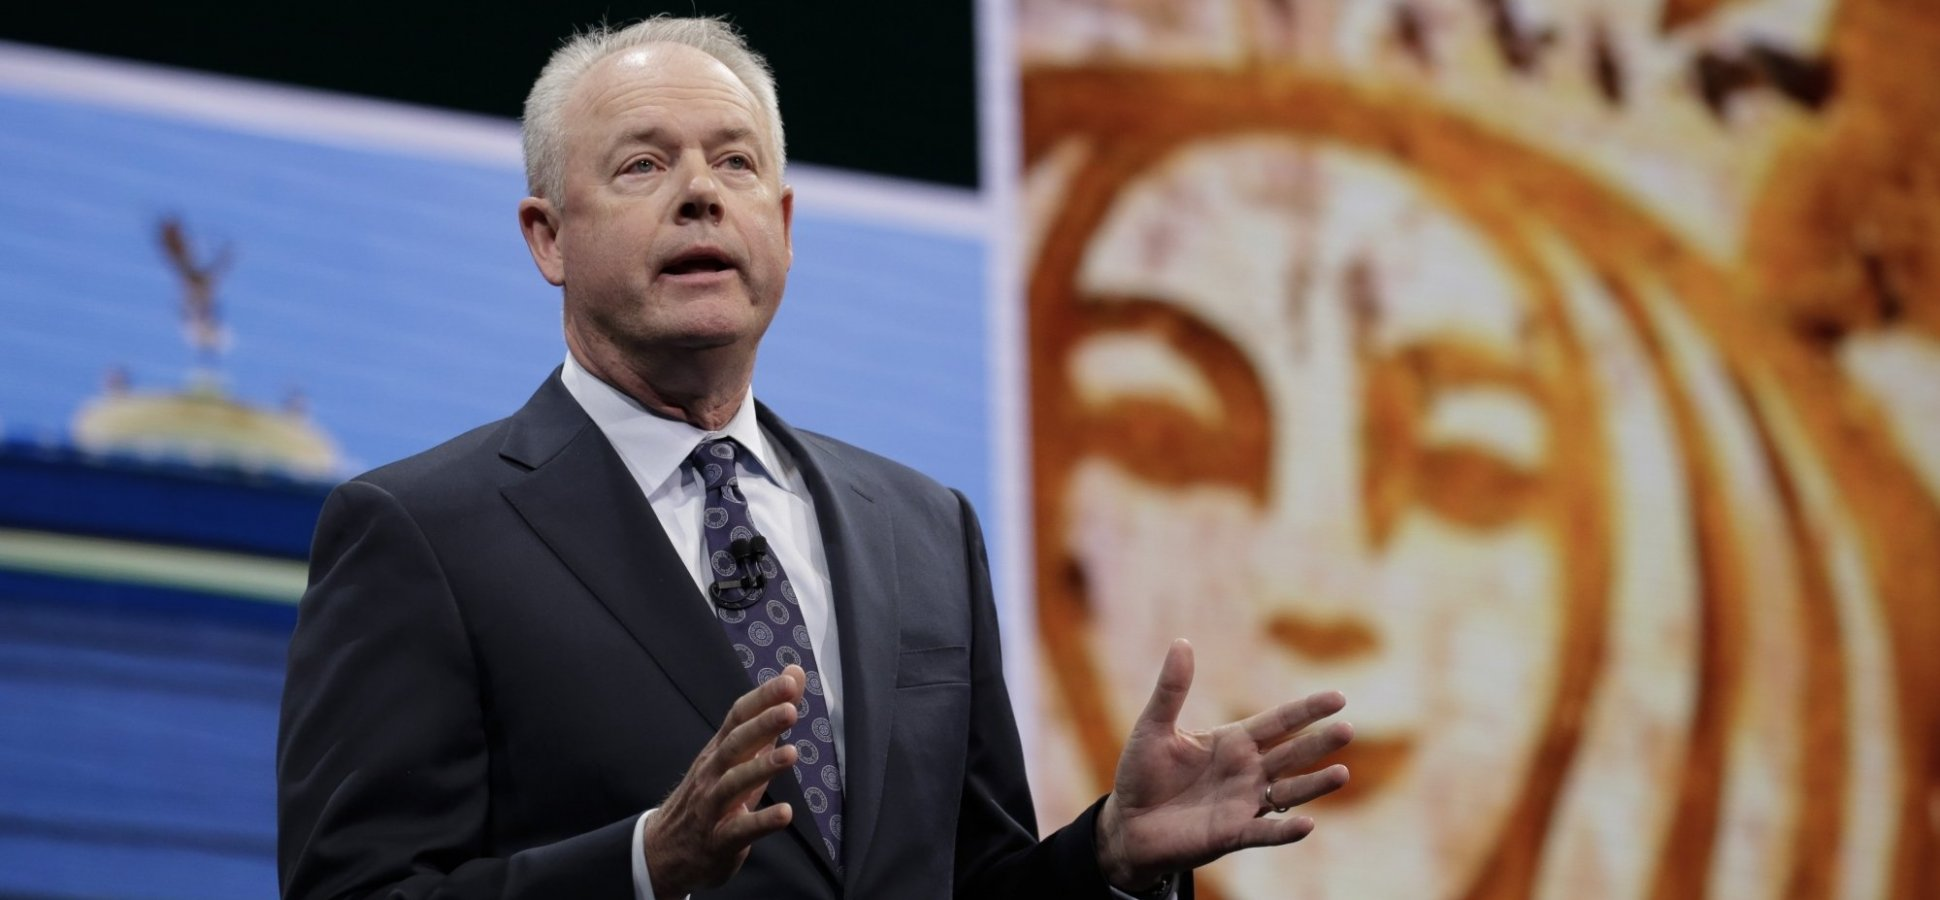 Starbucks's CEO Just Met With the 2 Men Arrested Last Week. It Was a Lesson in Emotional Intelligence